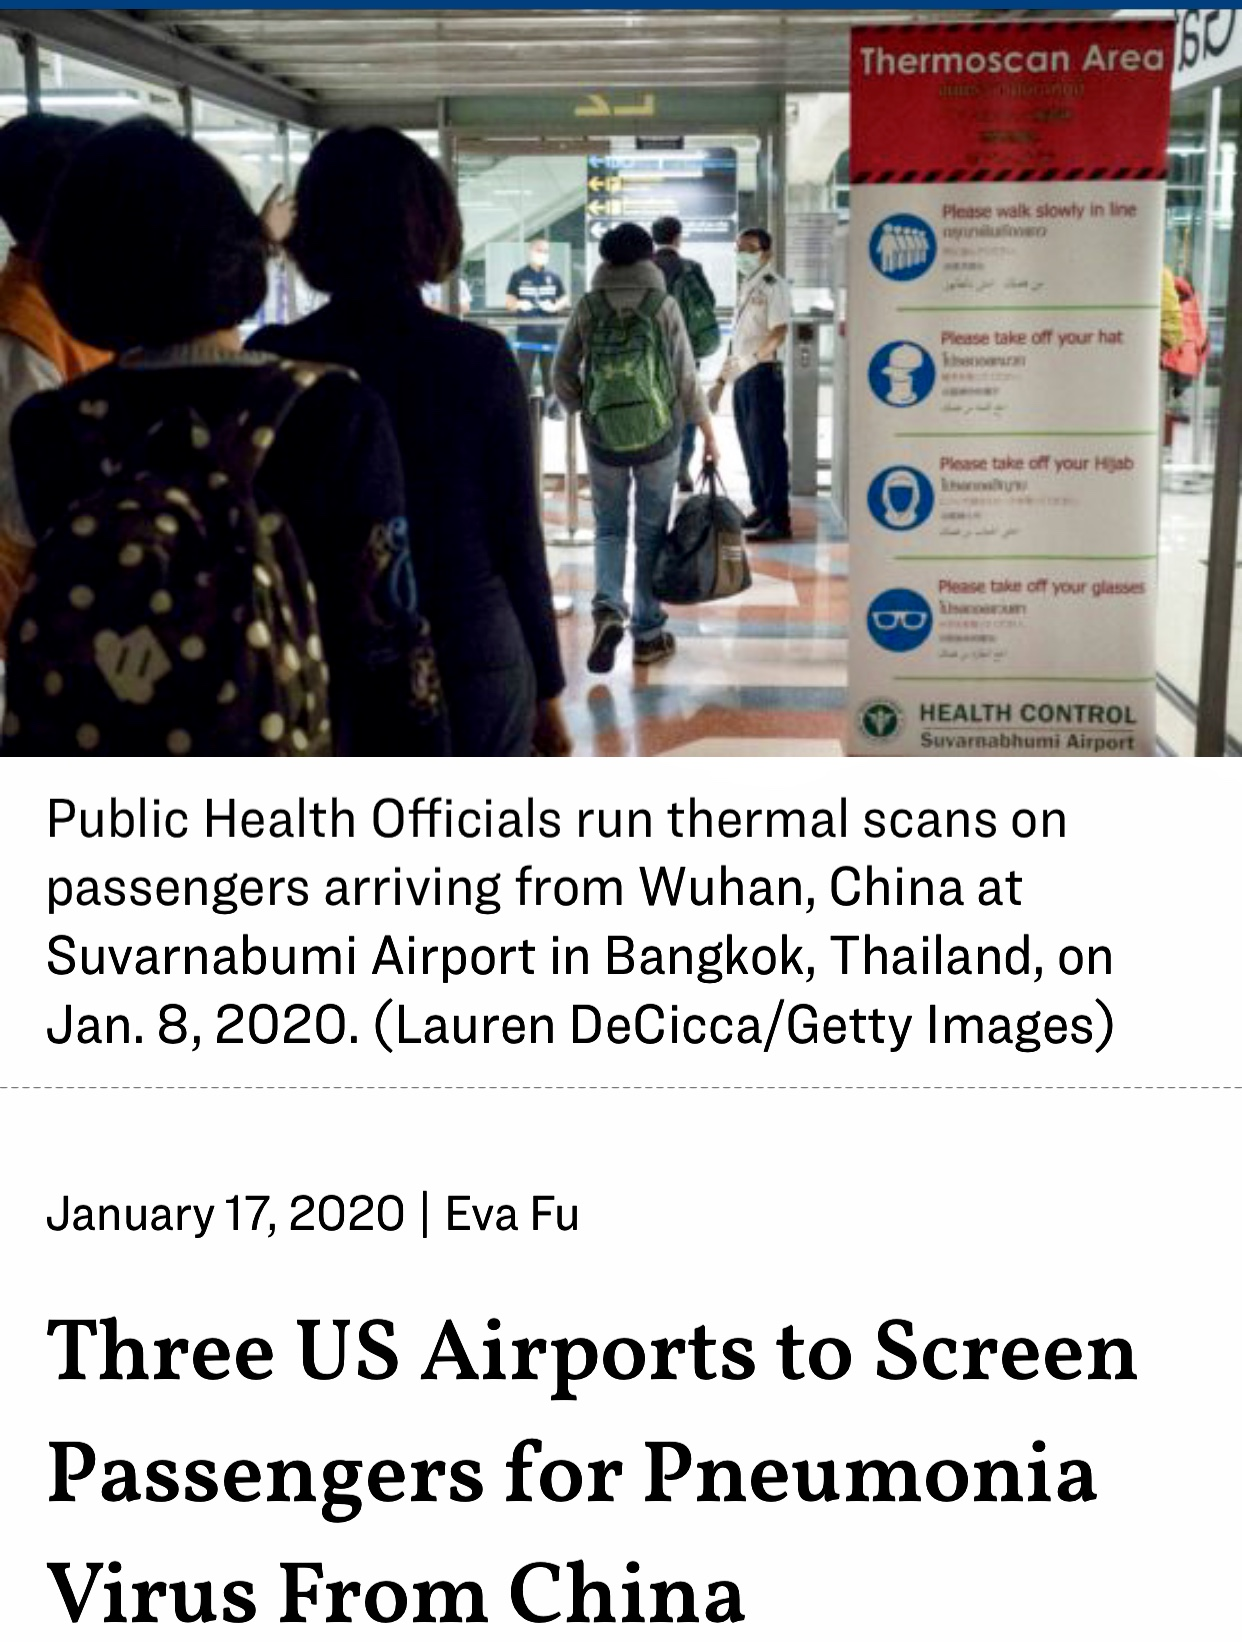 Three US Airports Screen Passengers for Pneumonia Virus From China